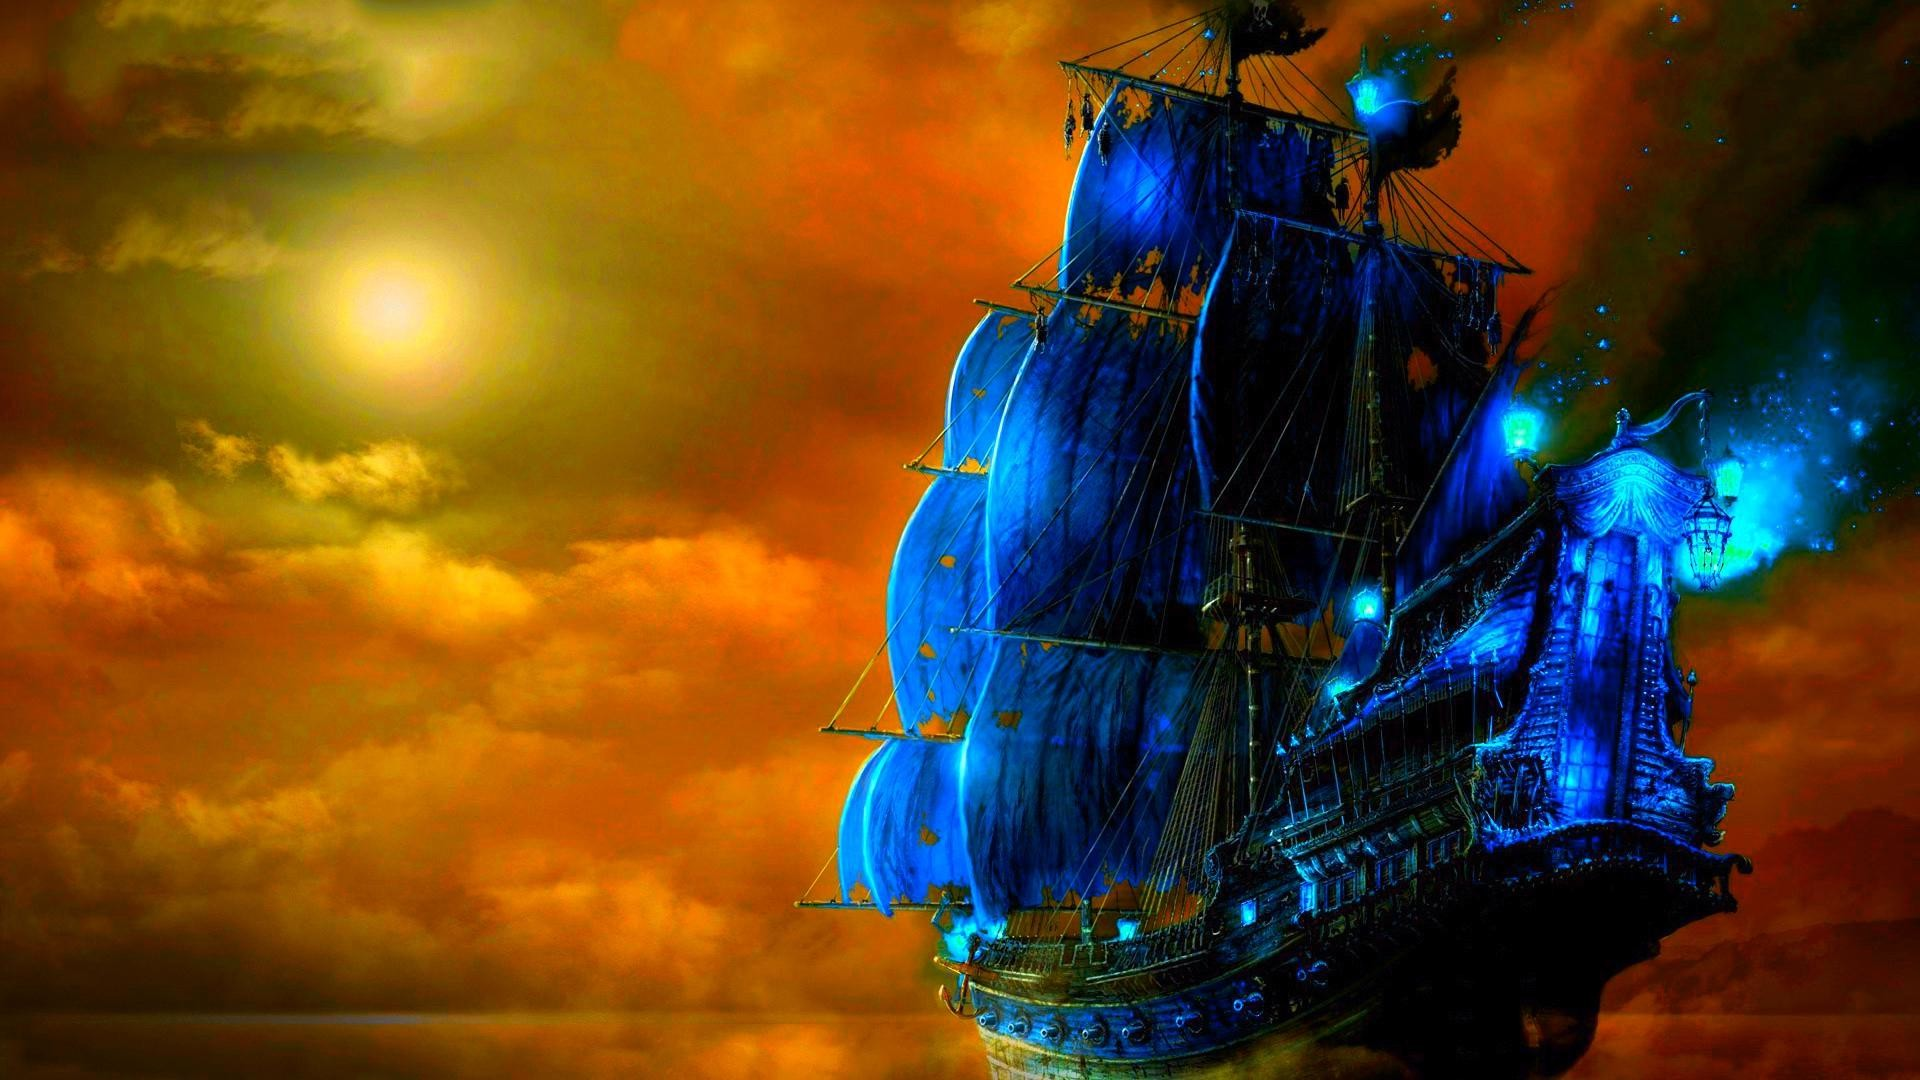 1920x1080 Pirate Ship Backgrounds - Wallpaper Cave Free Ghost Pirate Ship Wallpapers  1080p Â« Long Wallpapers ...